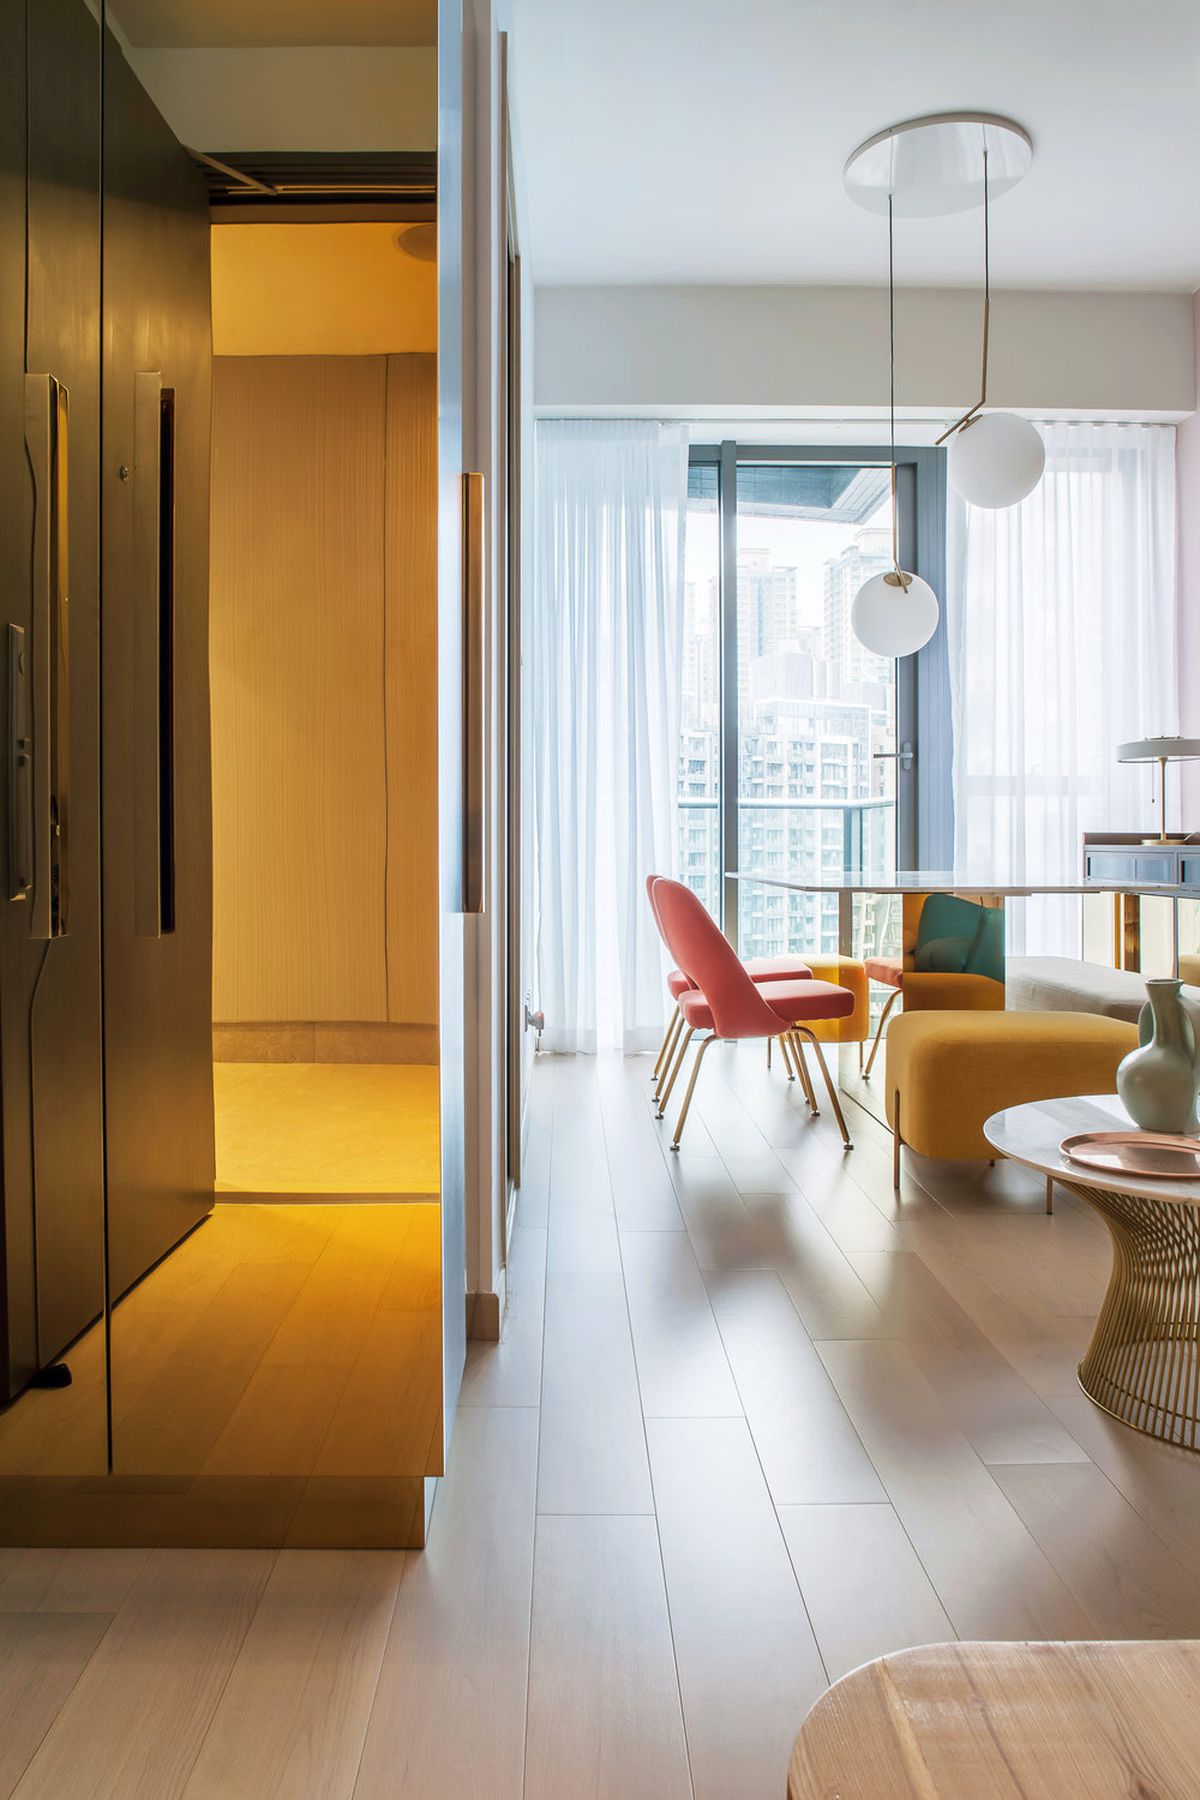 apartment designers. \u201cFrom Walls To Furniture Small Accessories, The Palette Of Apartment Is A Juxtaposition Colours And Textures,\u201d Write Designers. Designers